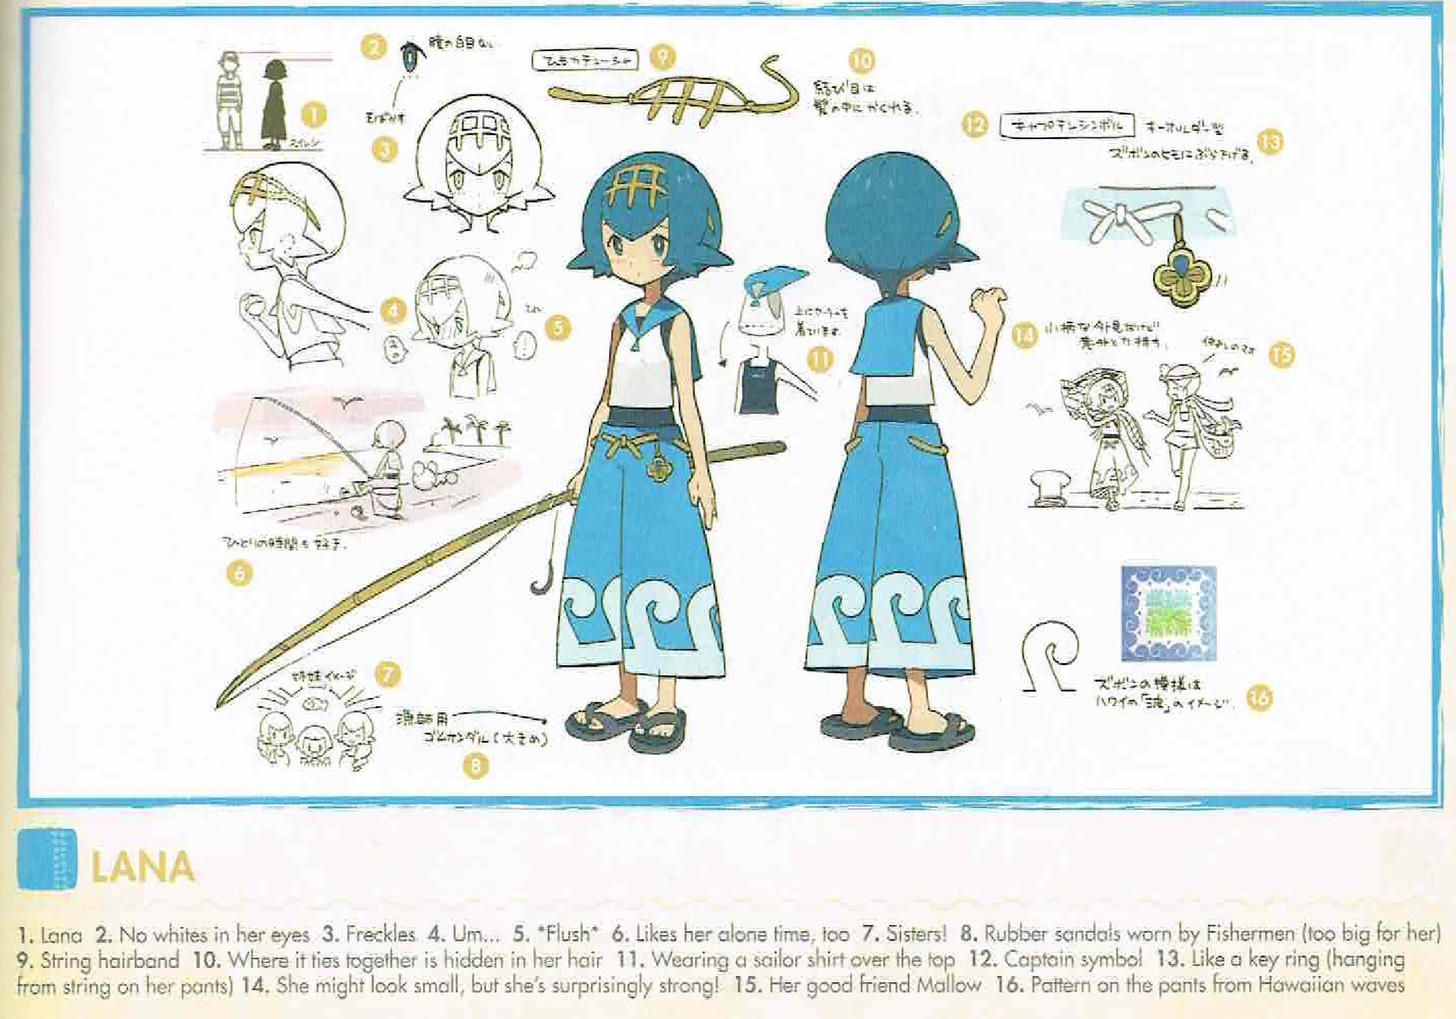 Pokemon sunmoon character concept arts part 1 concept art pokemon sunmoon character concept arts part 1 biocorpaavc Images